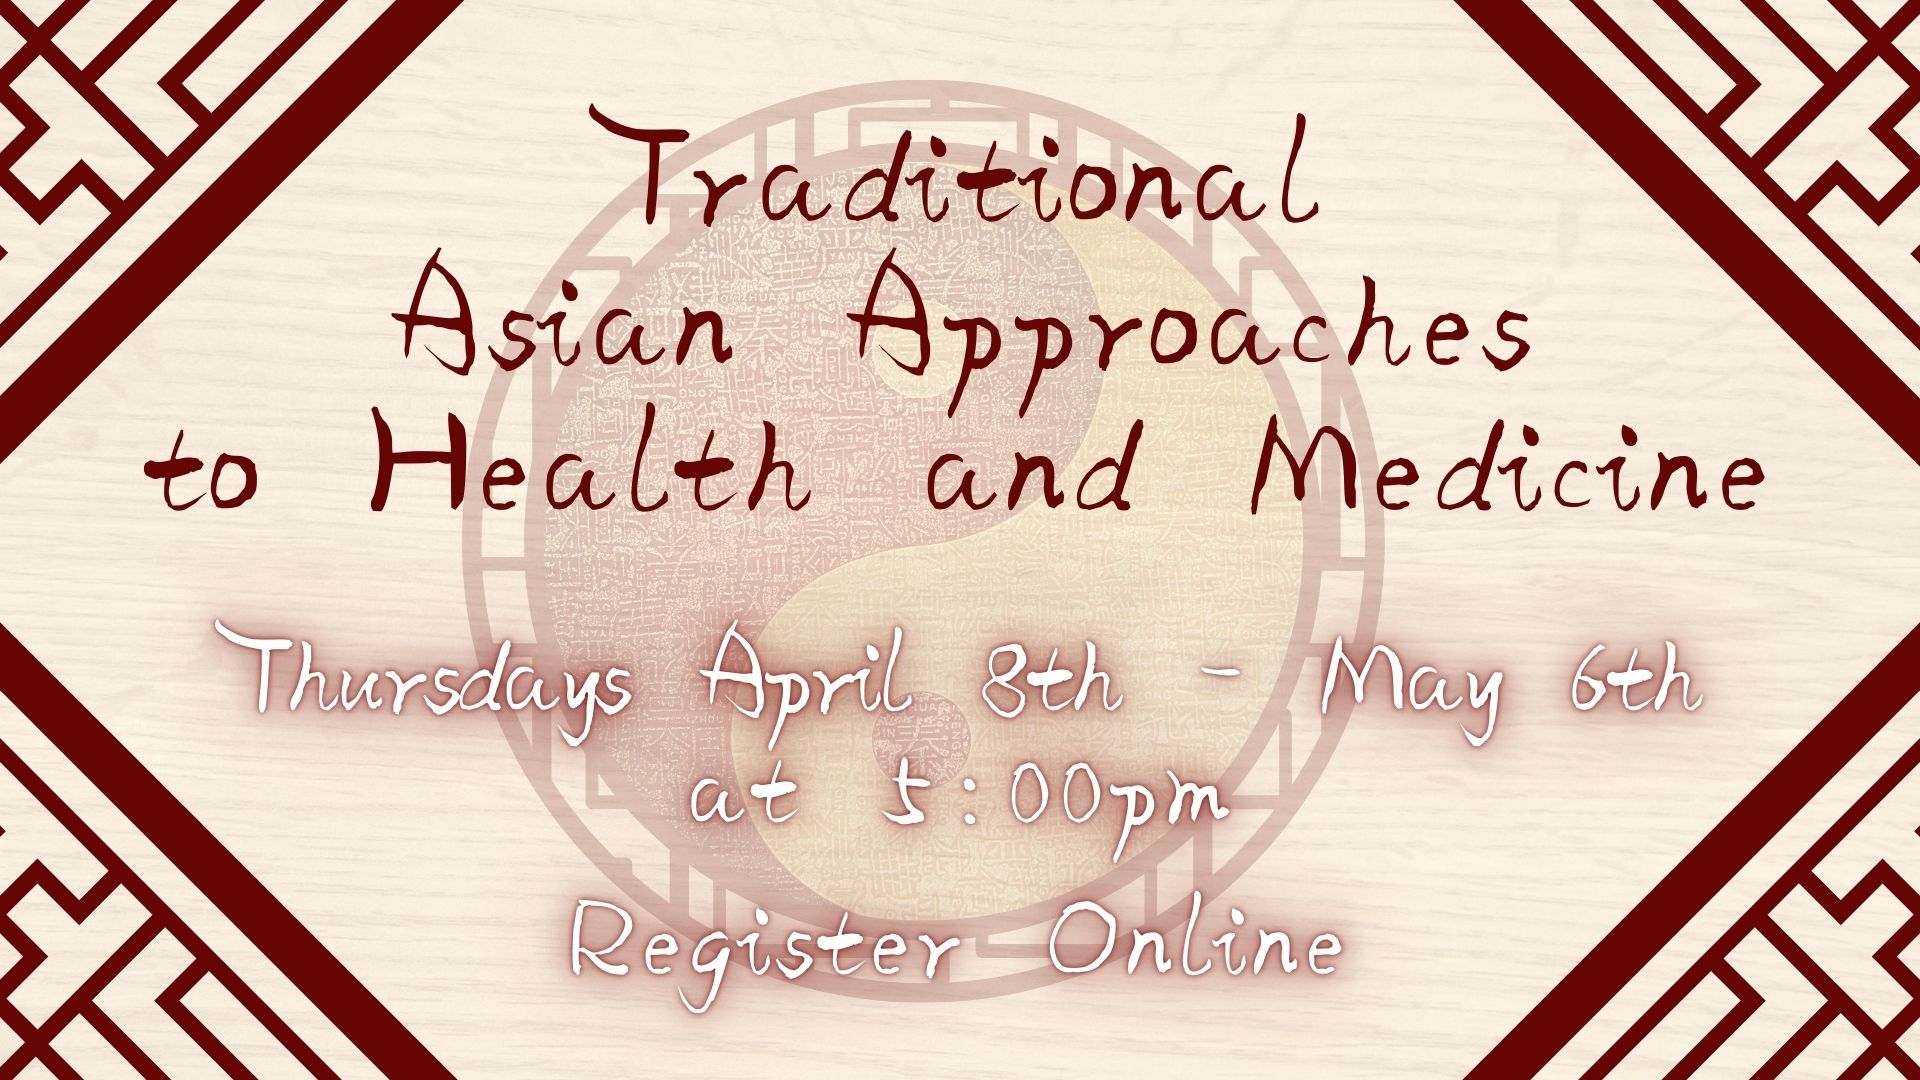 Traditional Asian Approaches to Health and Medicine